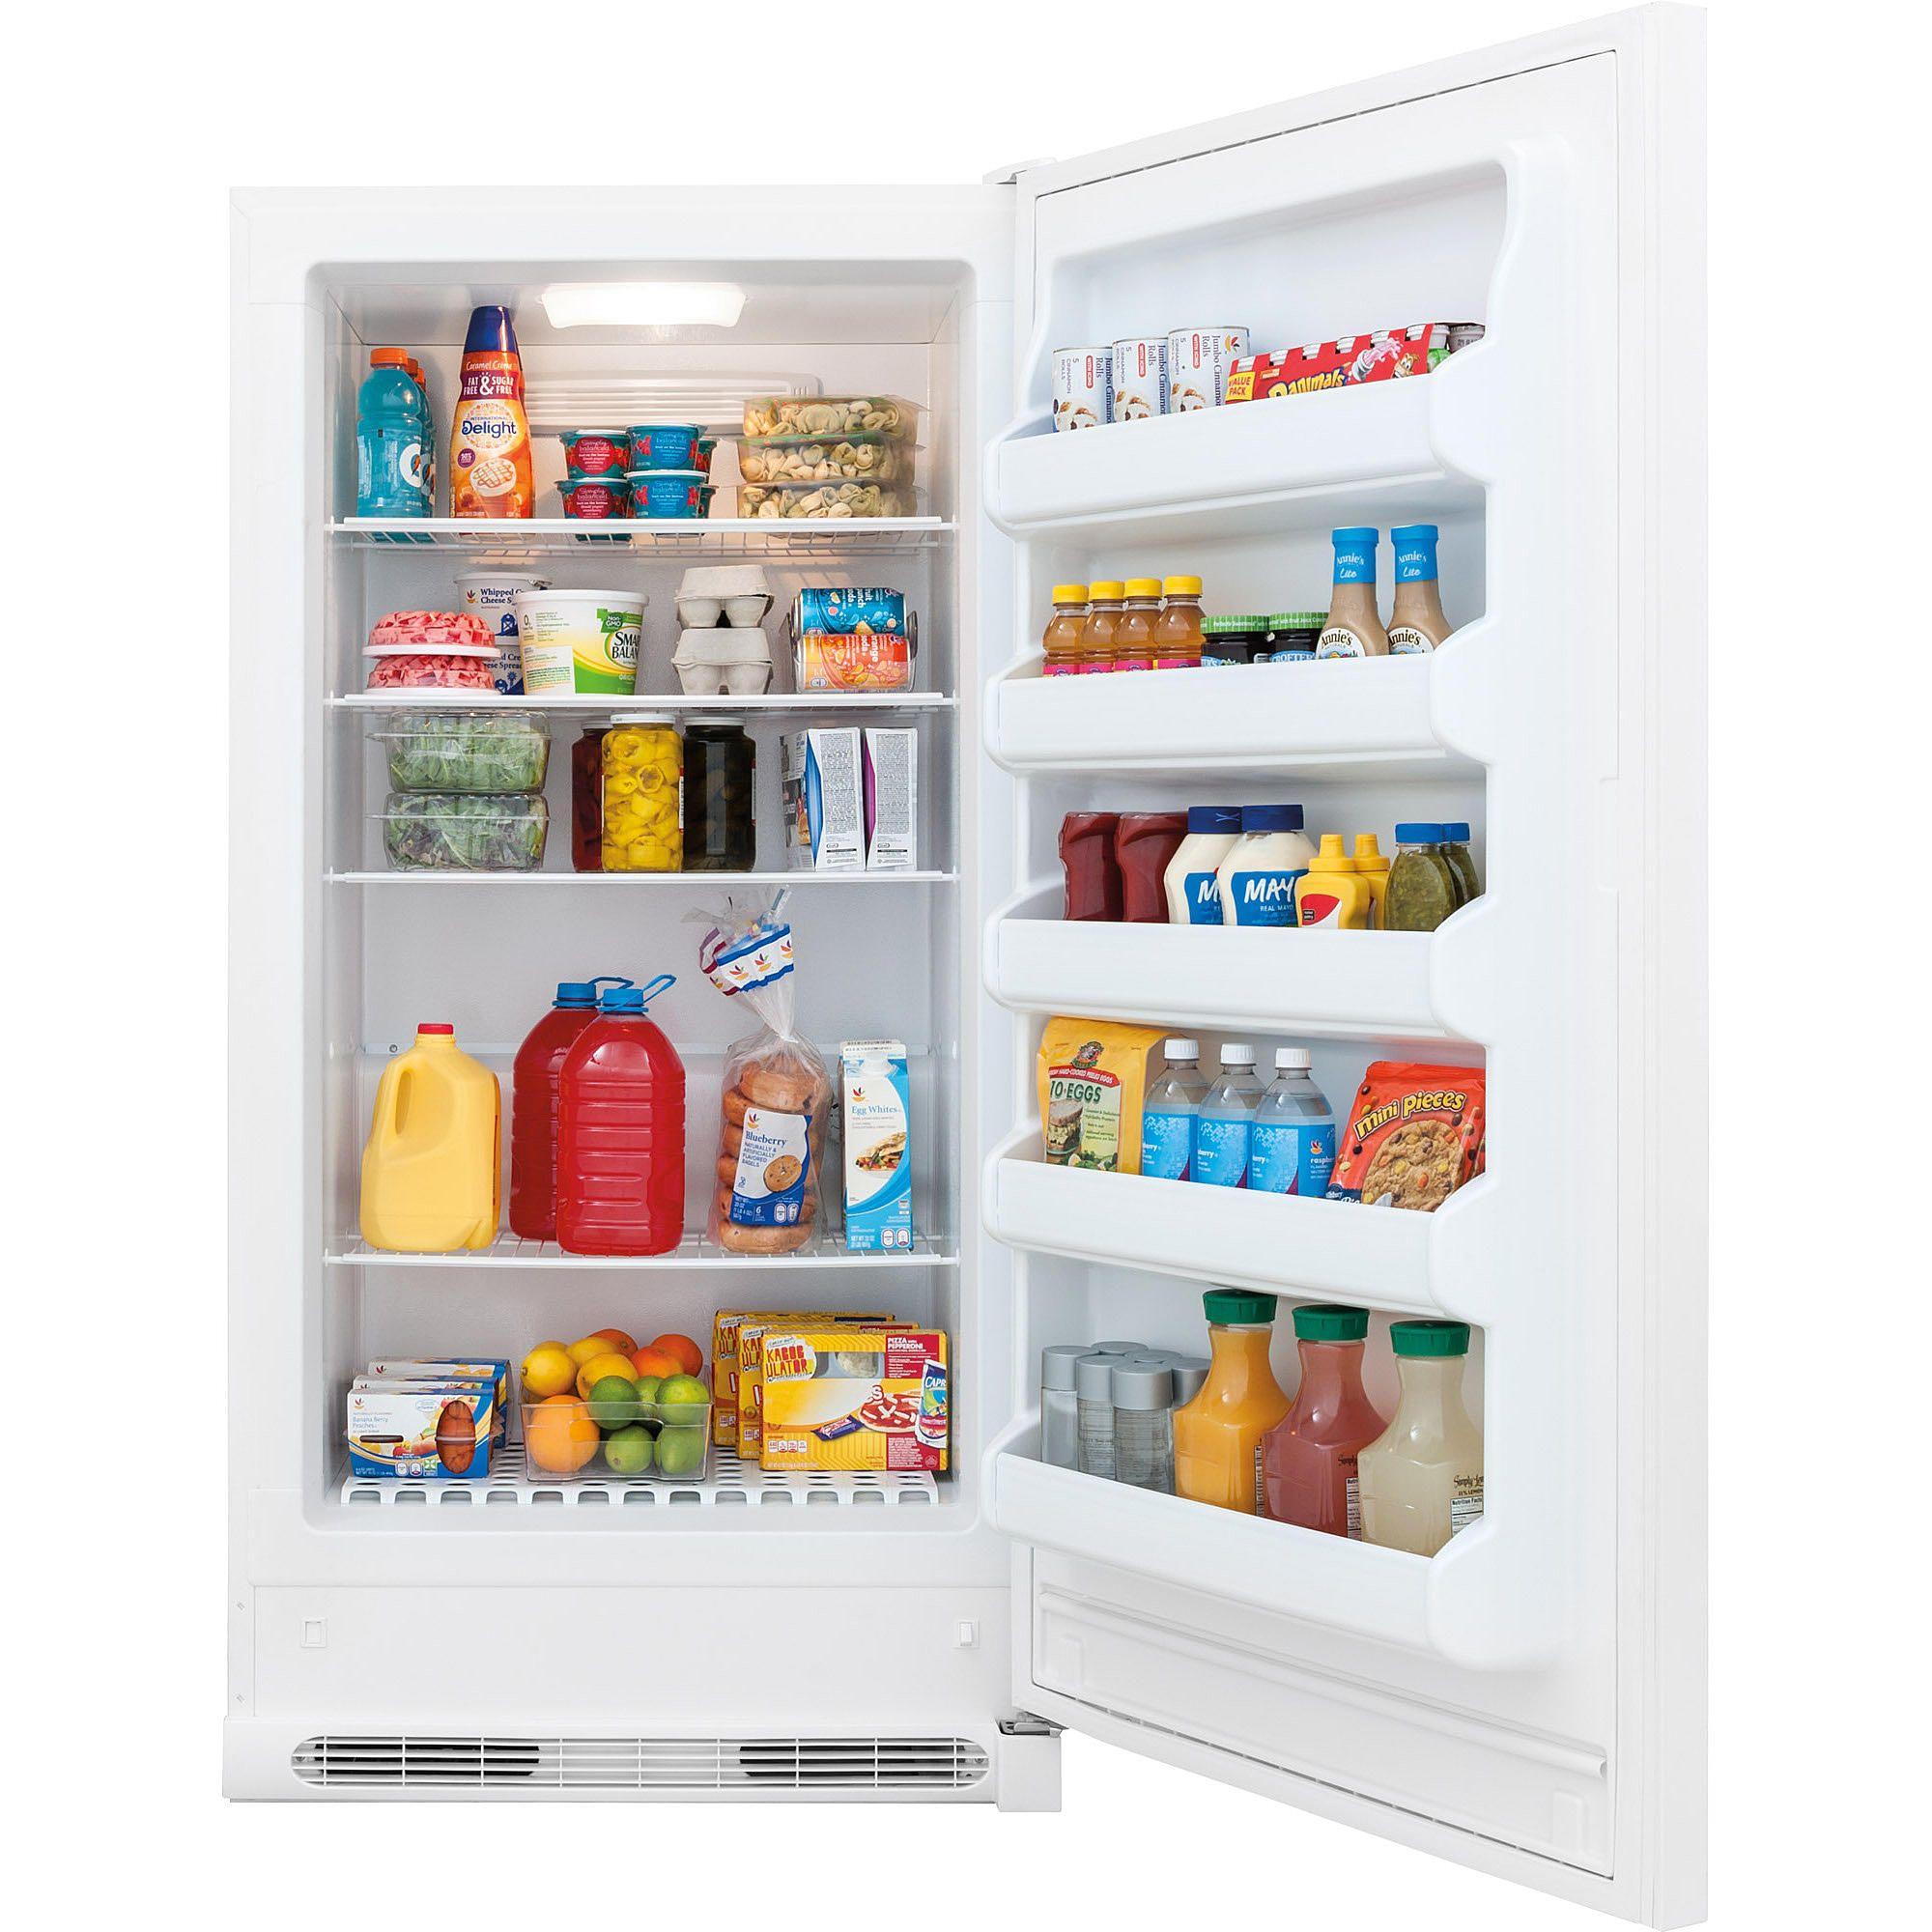 Frigidaire 17 Cu Ft Freezerless Refrigerator White Ffru17b2qw Freezerless Refrigerator Frigidaire Wire Pantry Shelves